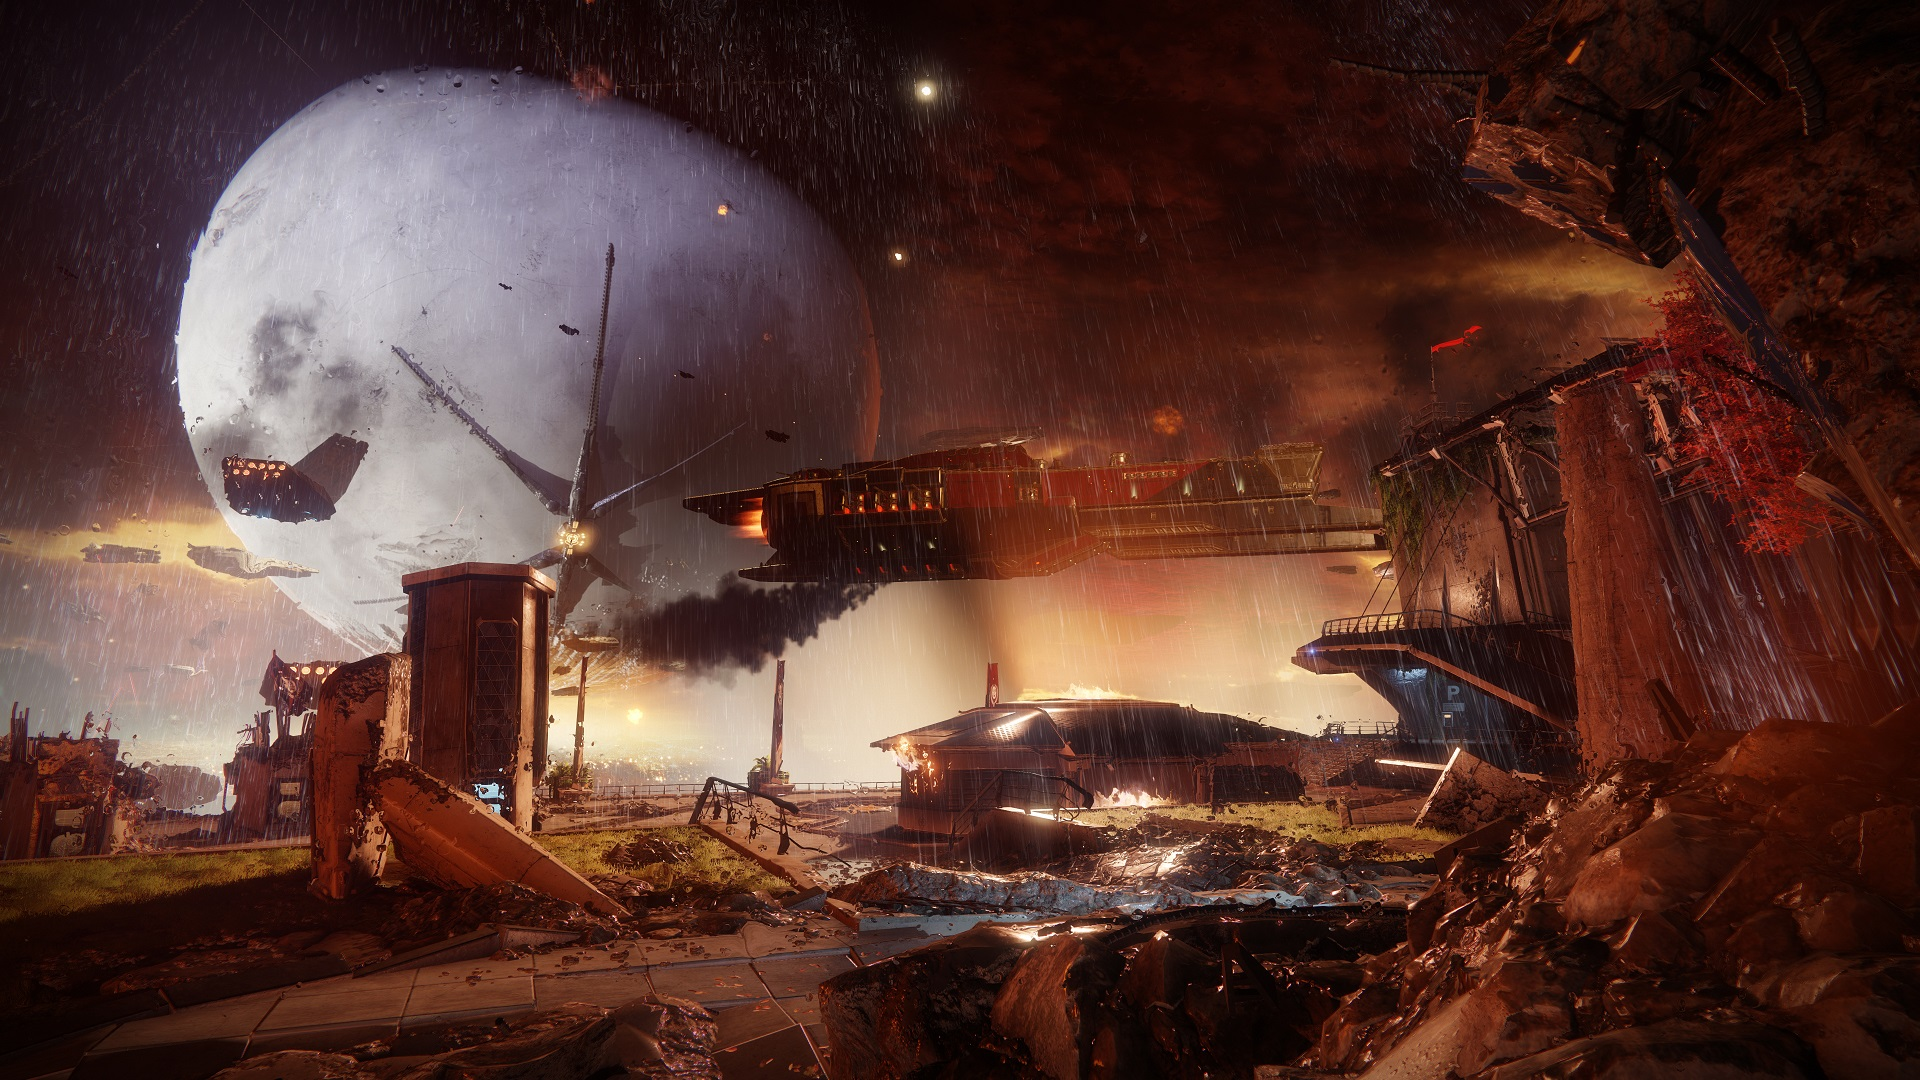 Bungie have poured a lot of effort into improving the visual fidelity of Destiny 2 specifically for PC, take advantage of that by ensuring your rig can run it.